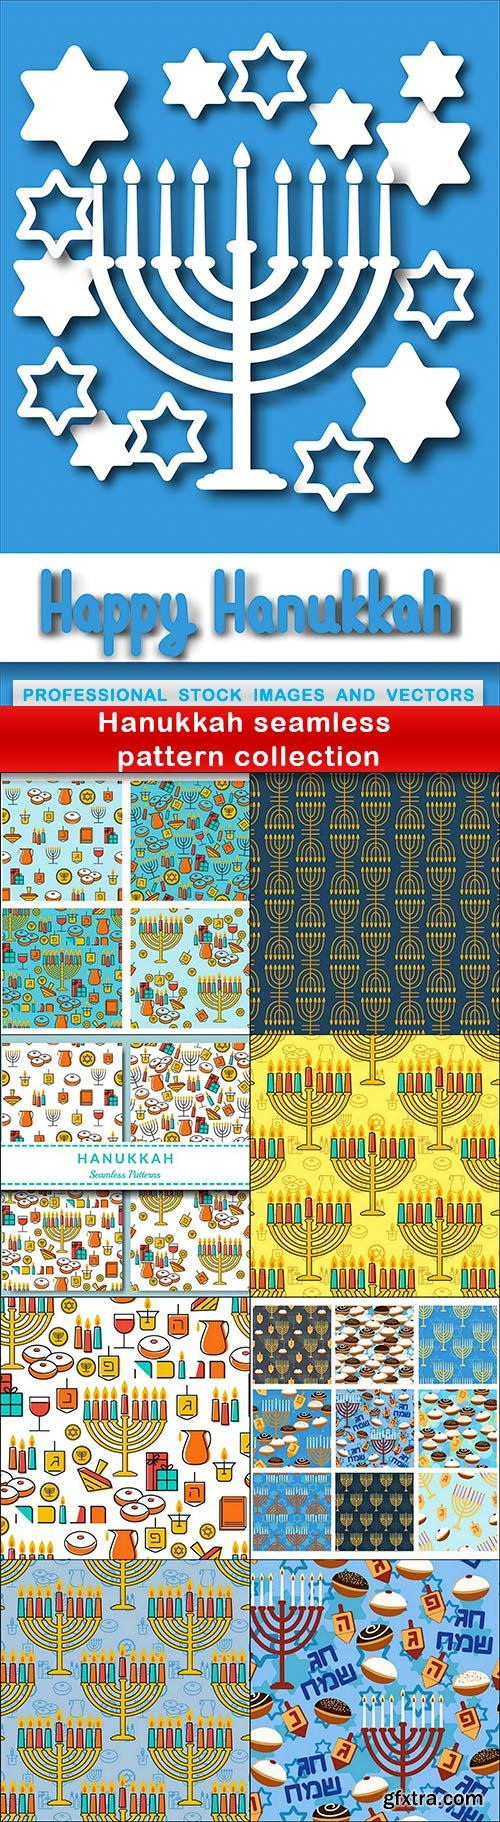 Hanukkah seamless pattern collection - 9 EPS